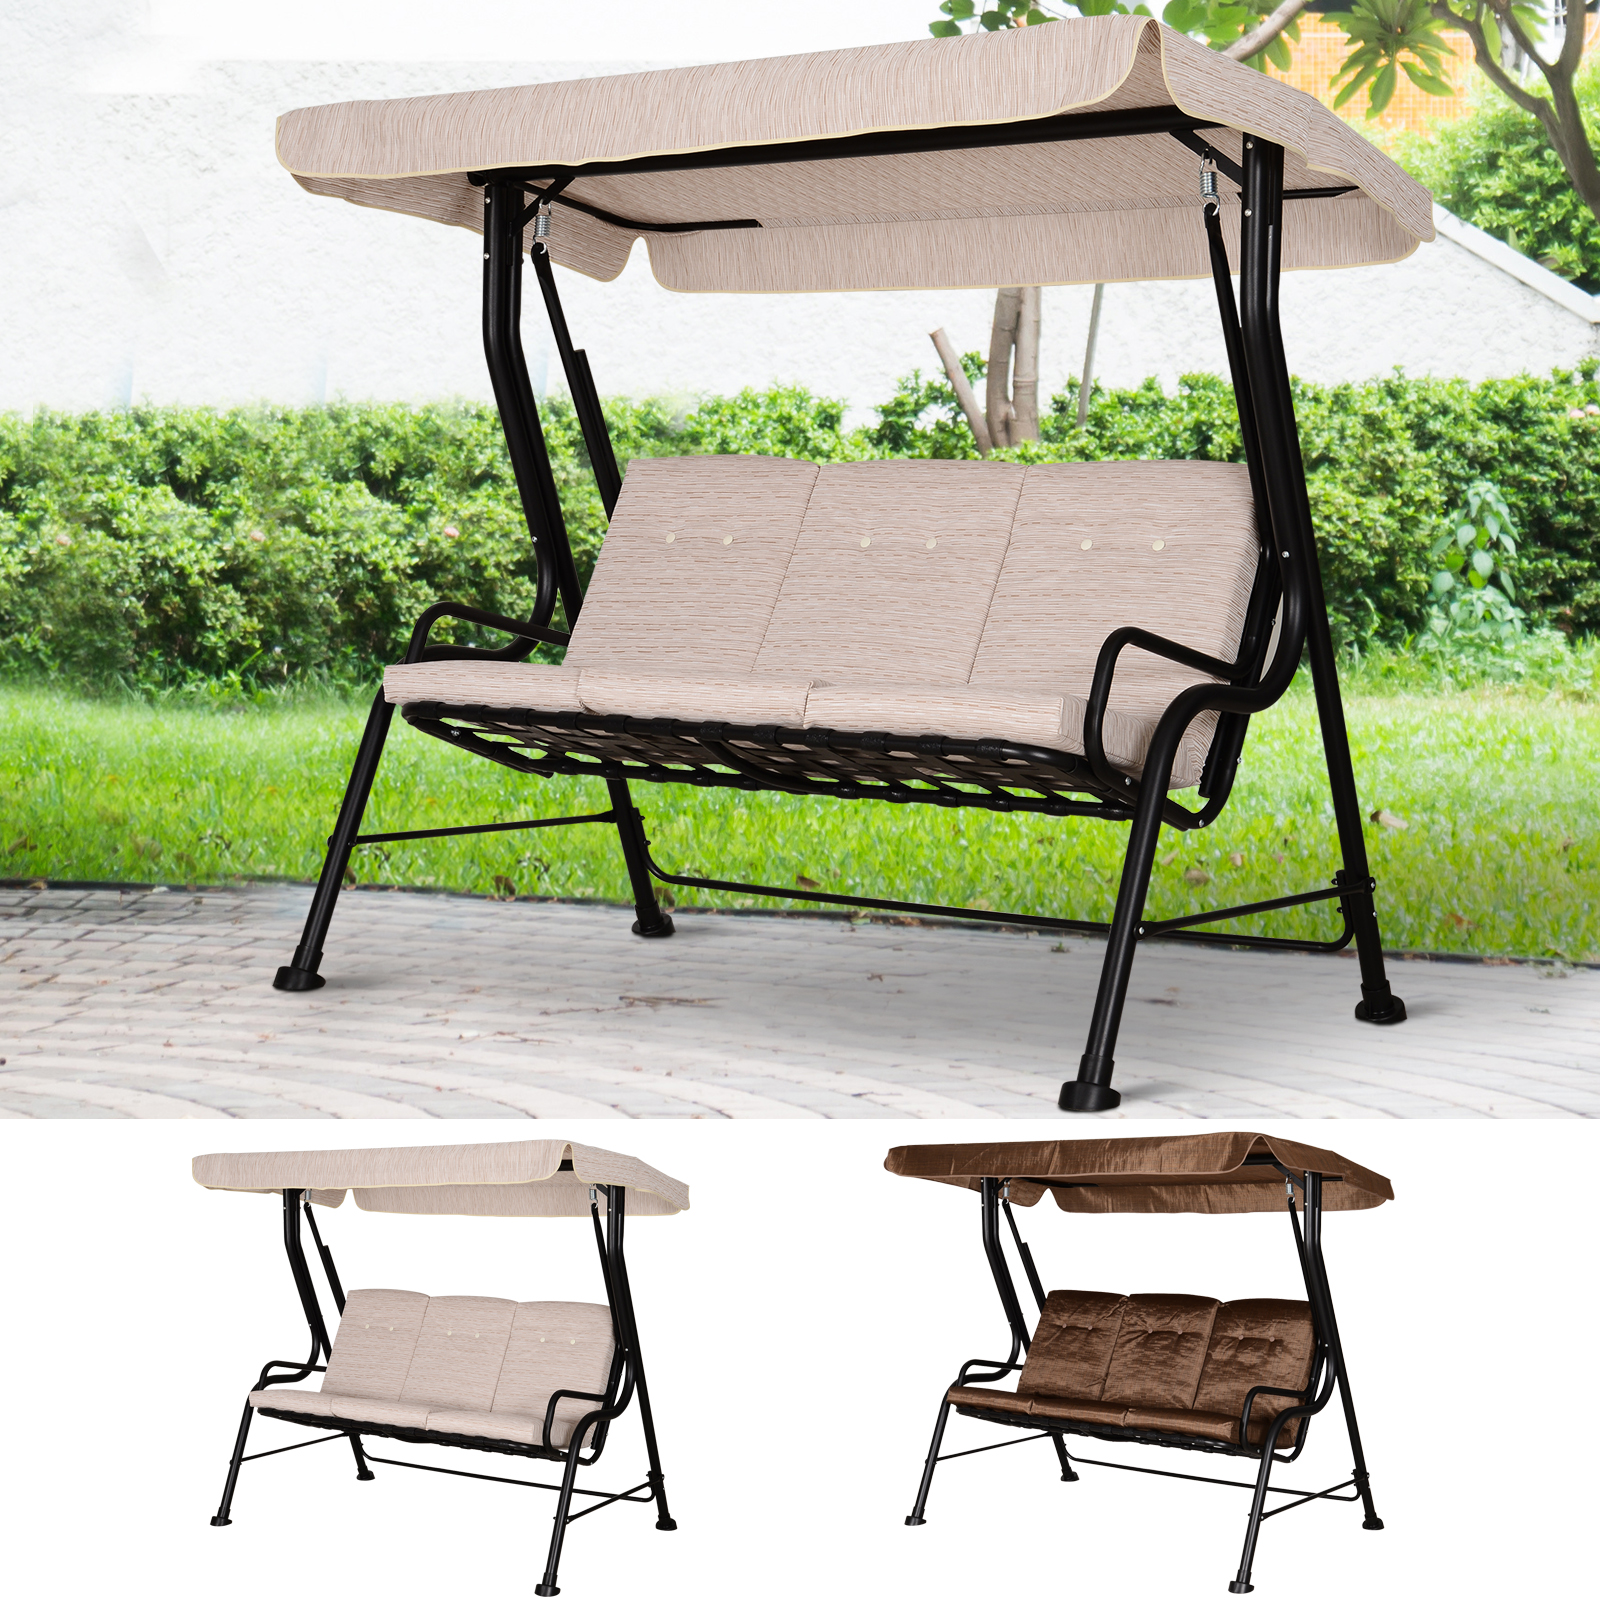 Outdoor Garden Backyard 3 Seater Porch Swing Chair Chaise Lounge W Canopy Ebay